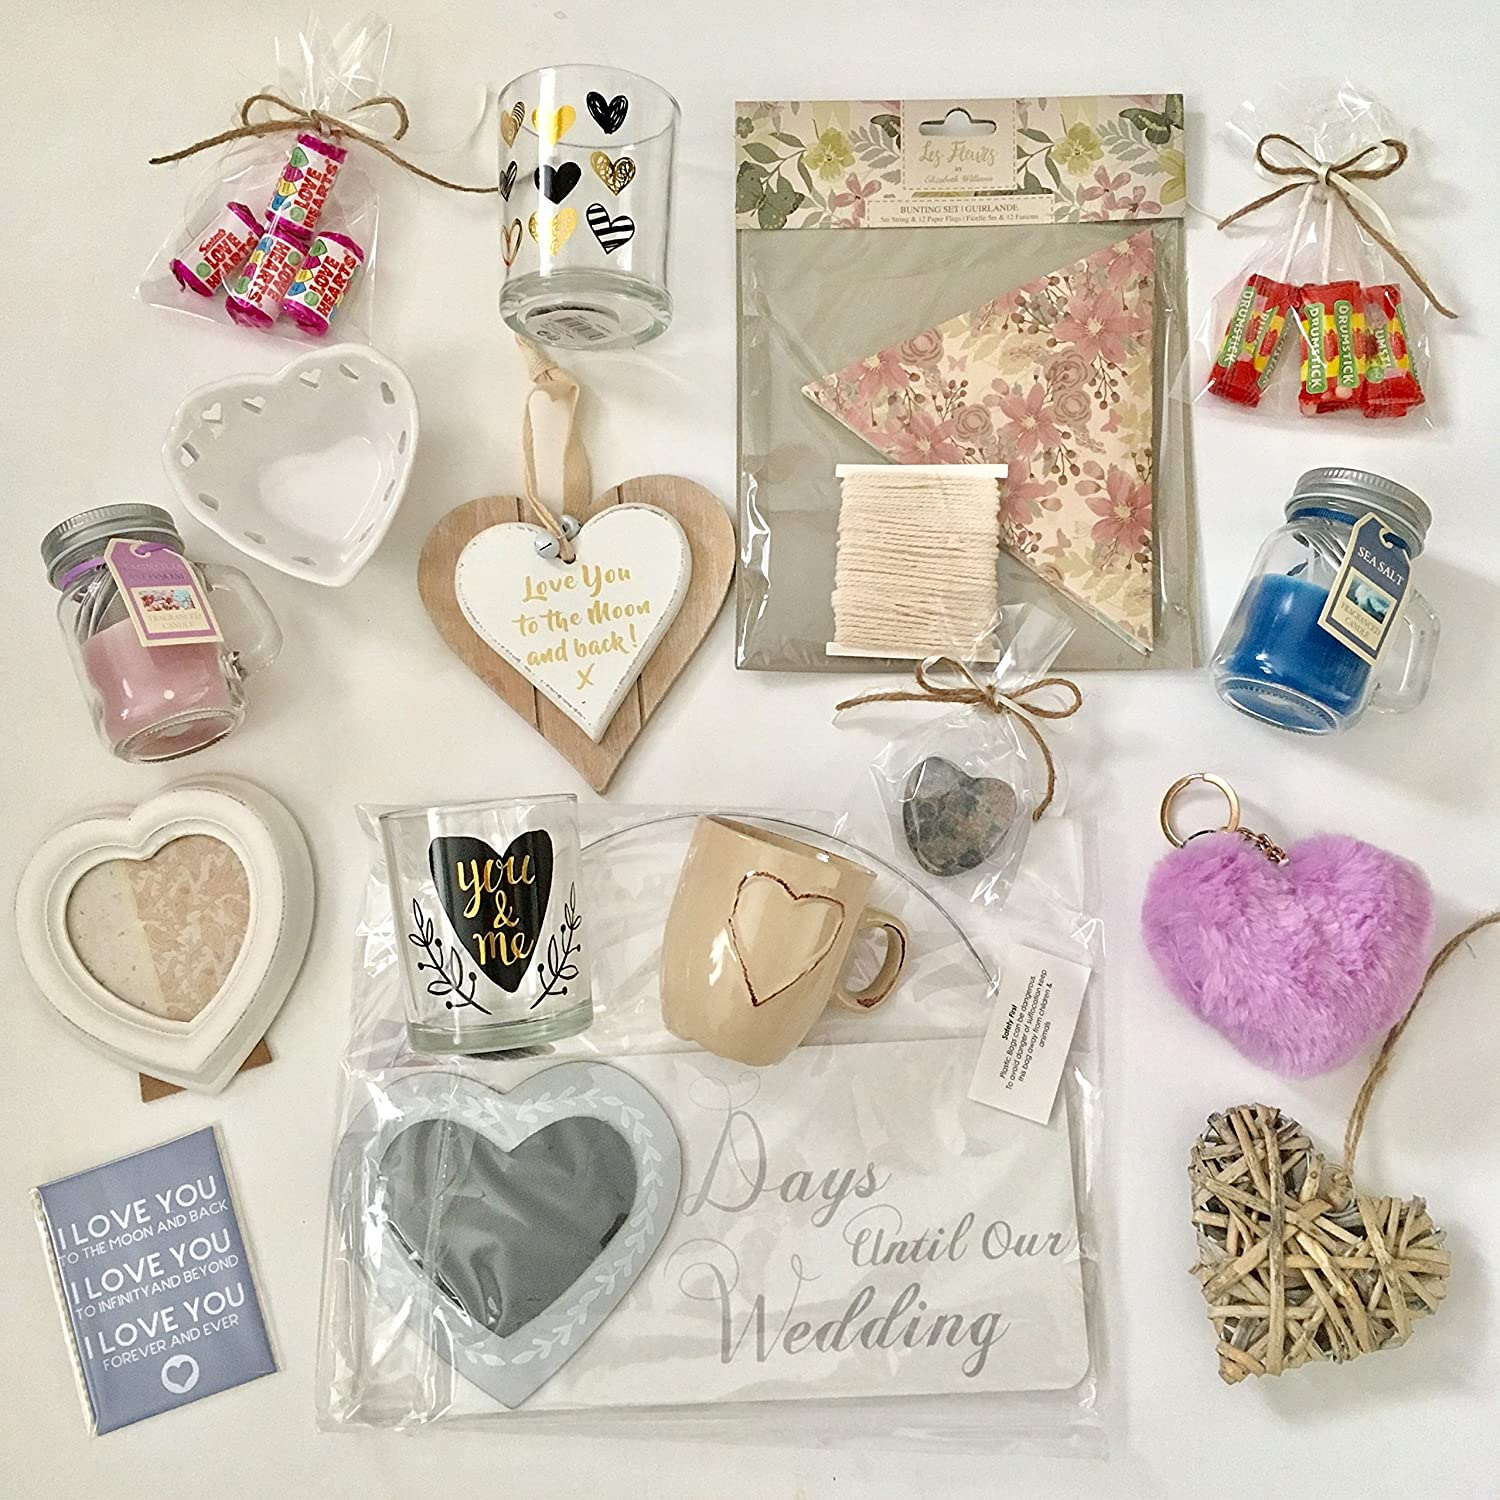 Bride Wedding Countdown Gift Box (10 Day): Amazon.co.uk: Kitchen & Home